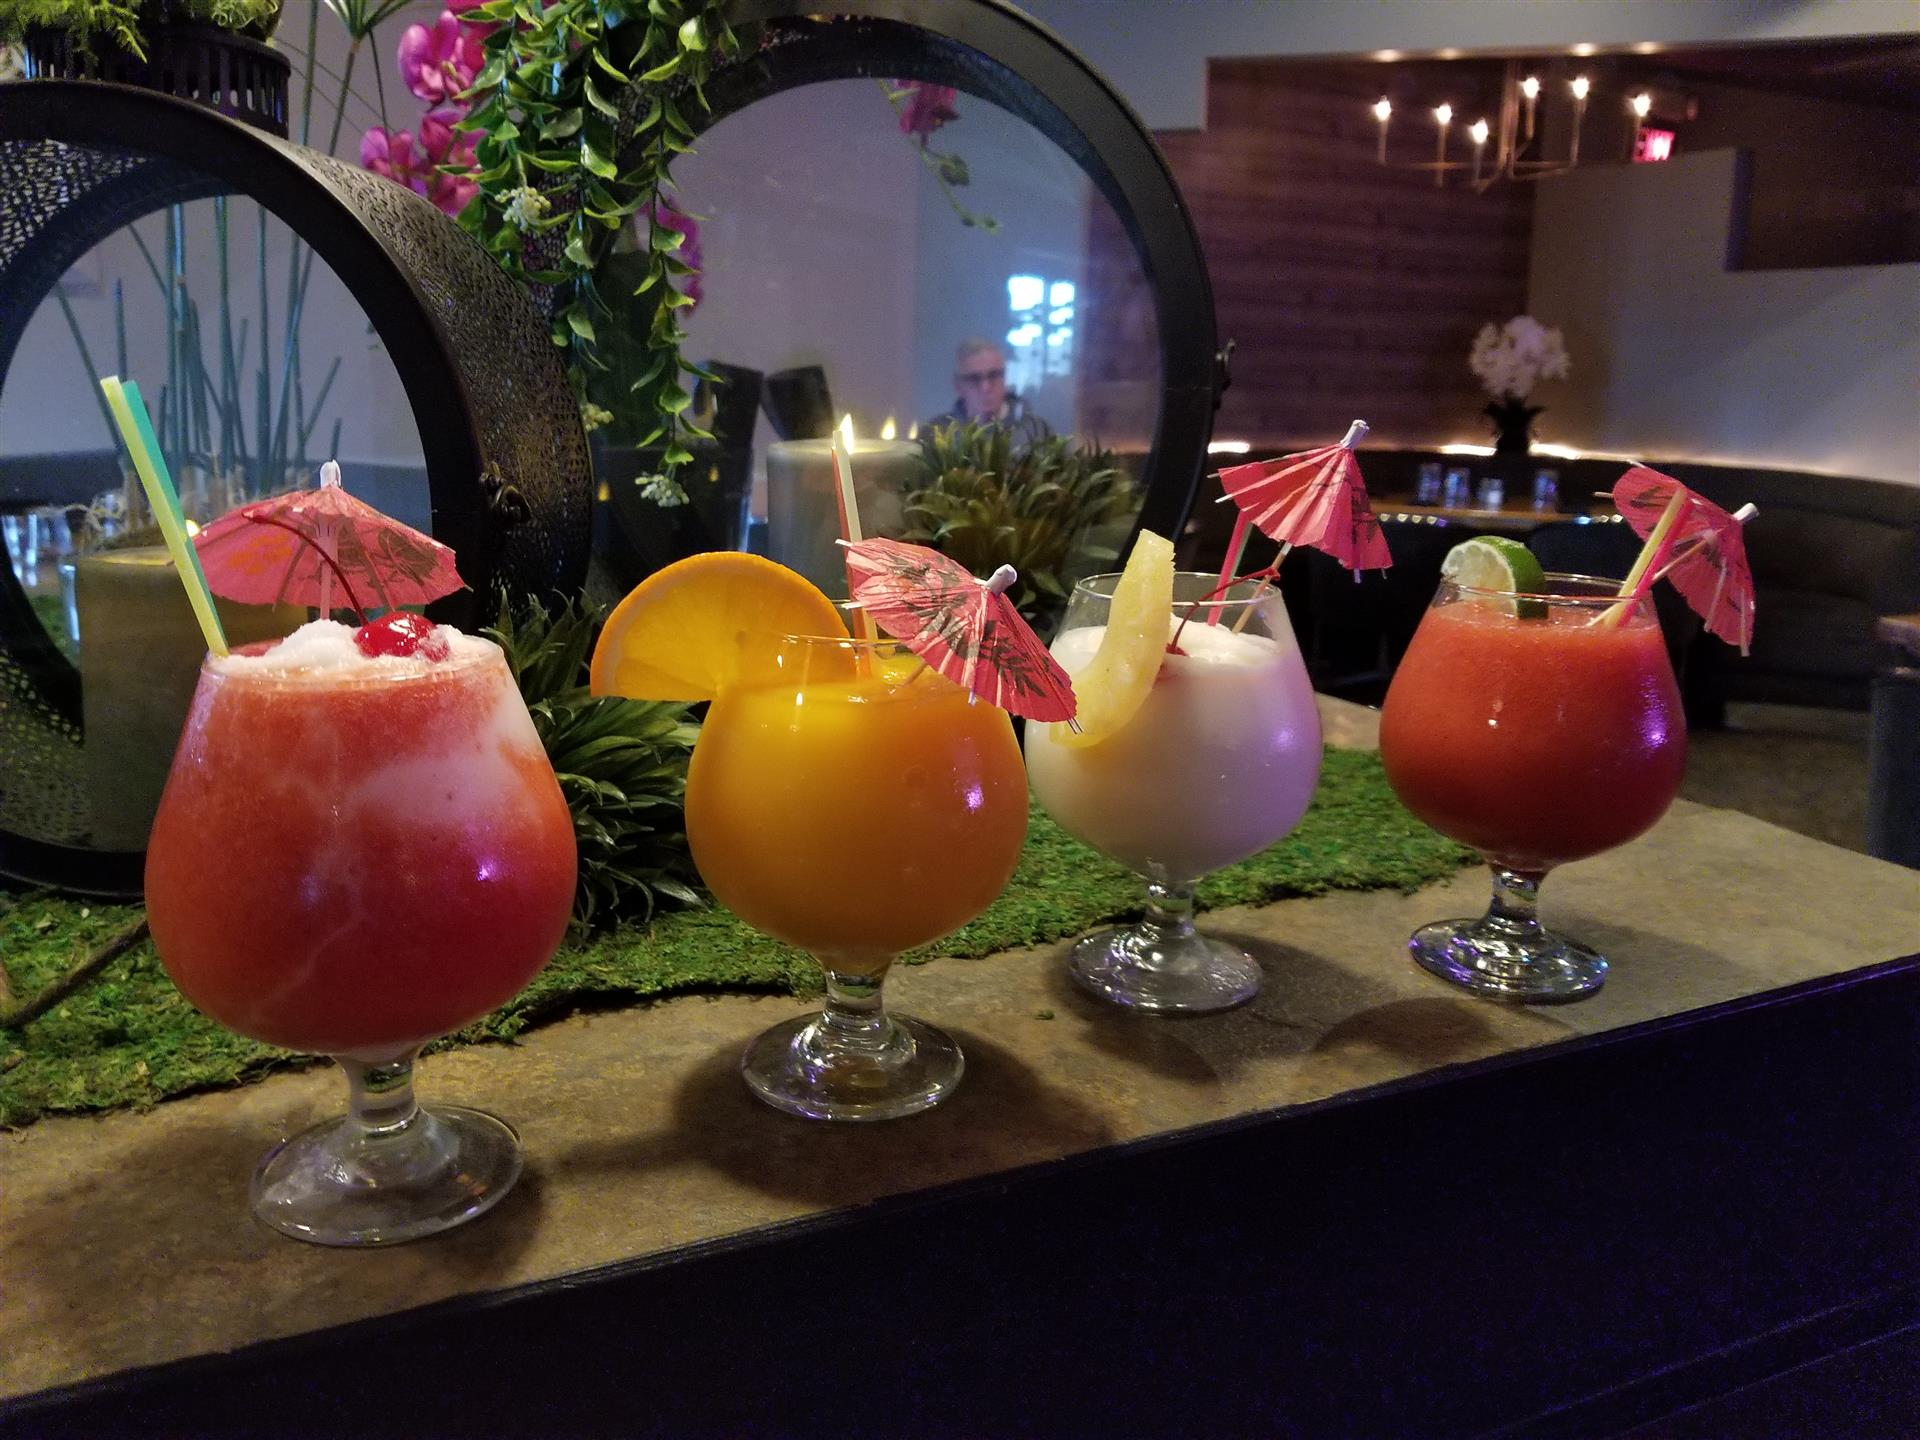 4 different kinds of daiquiris on a table